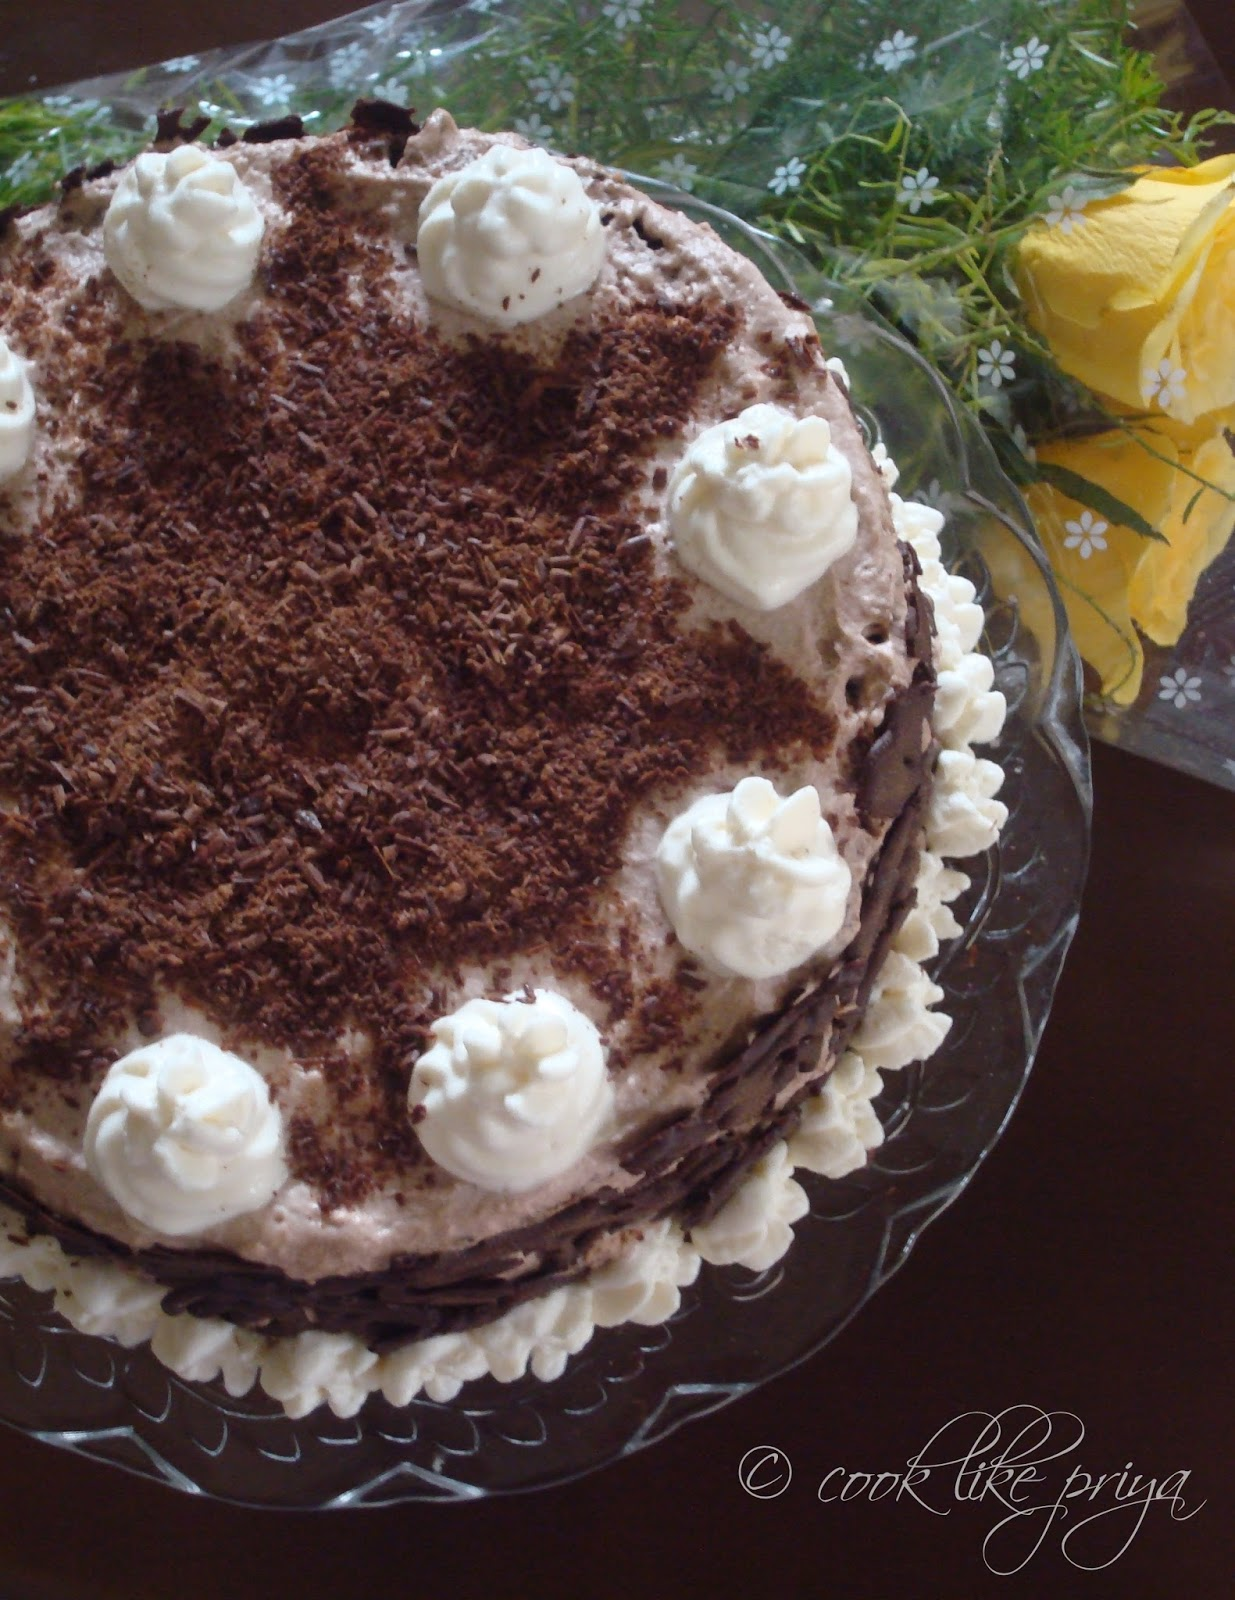 Cook like Priya Chocolate Forest Cake Happy Birthday Husband